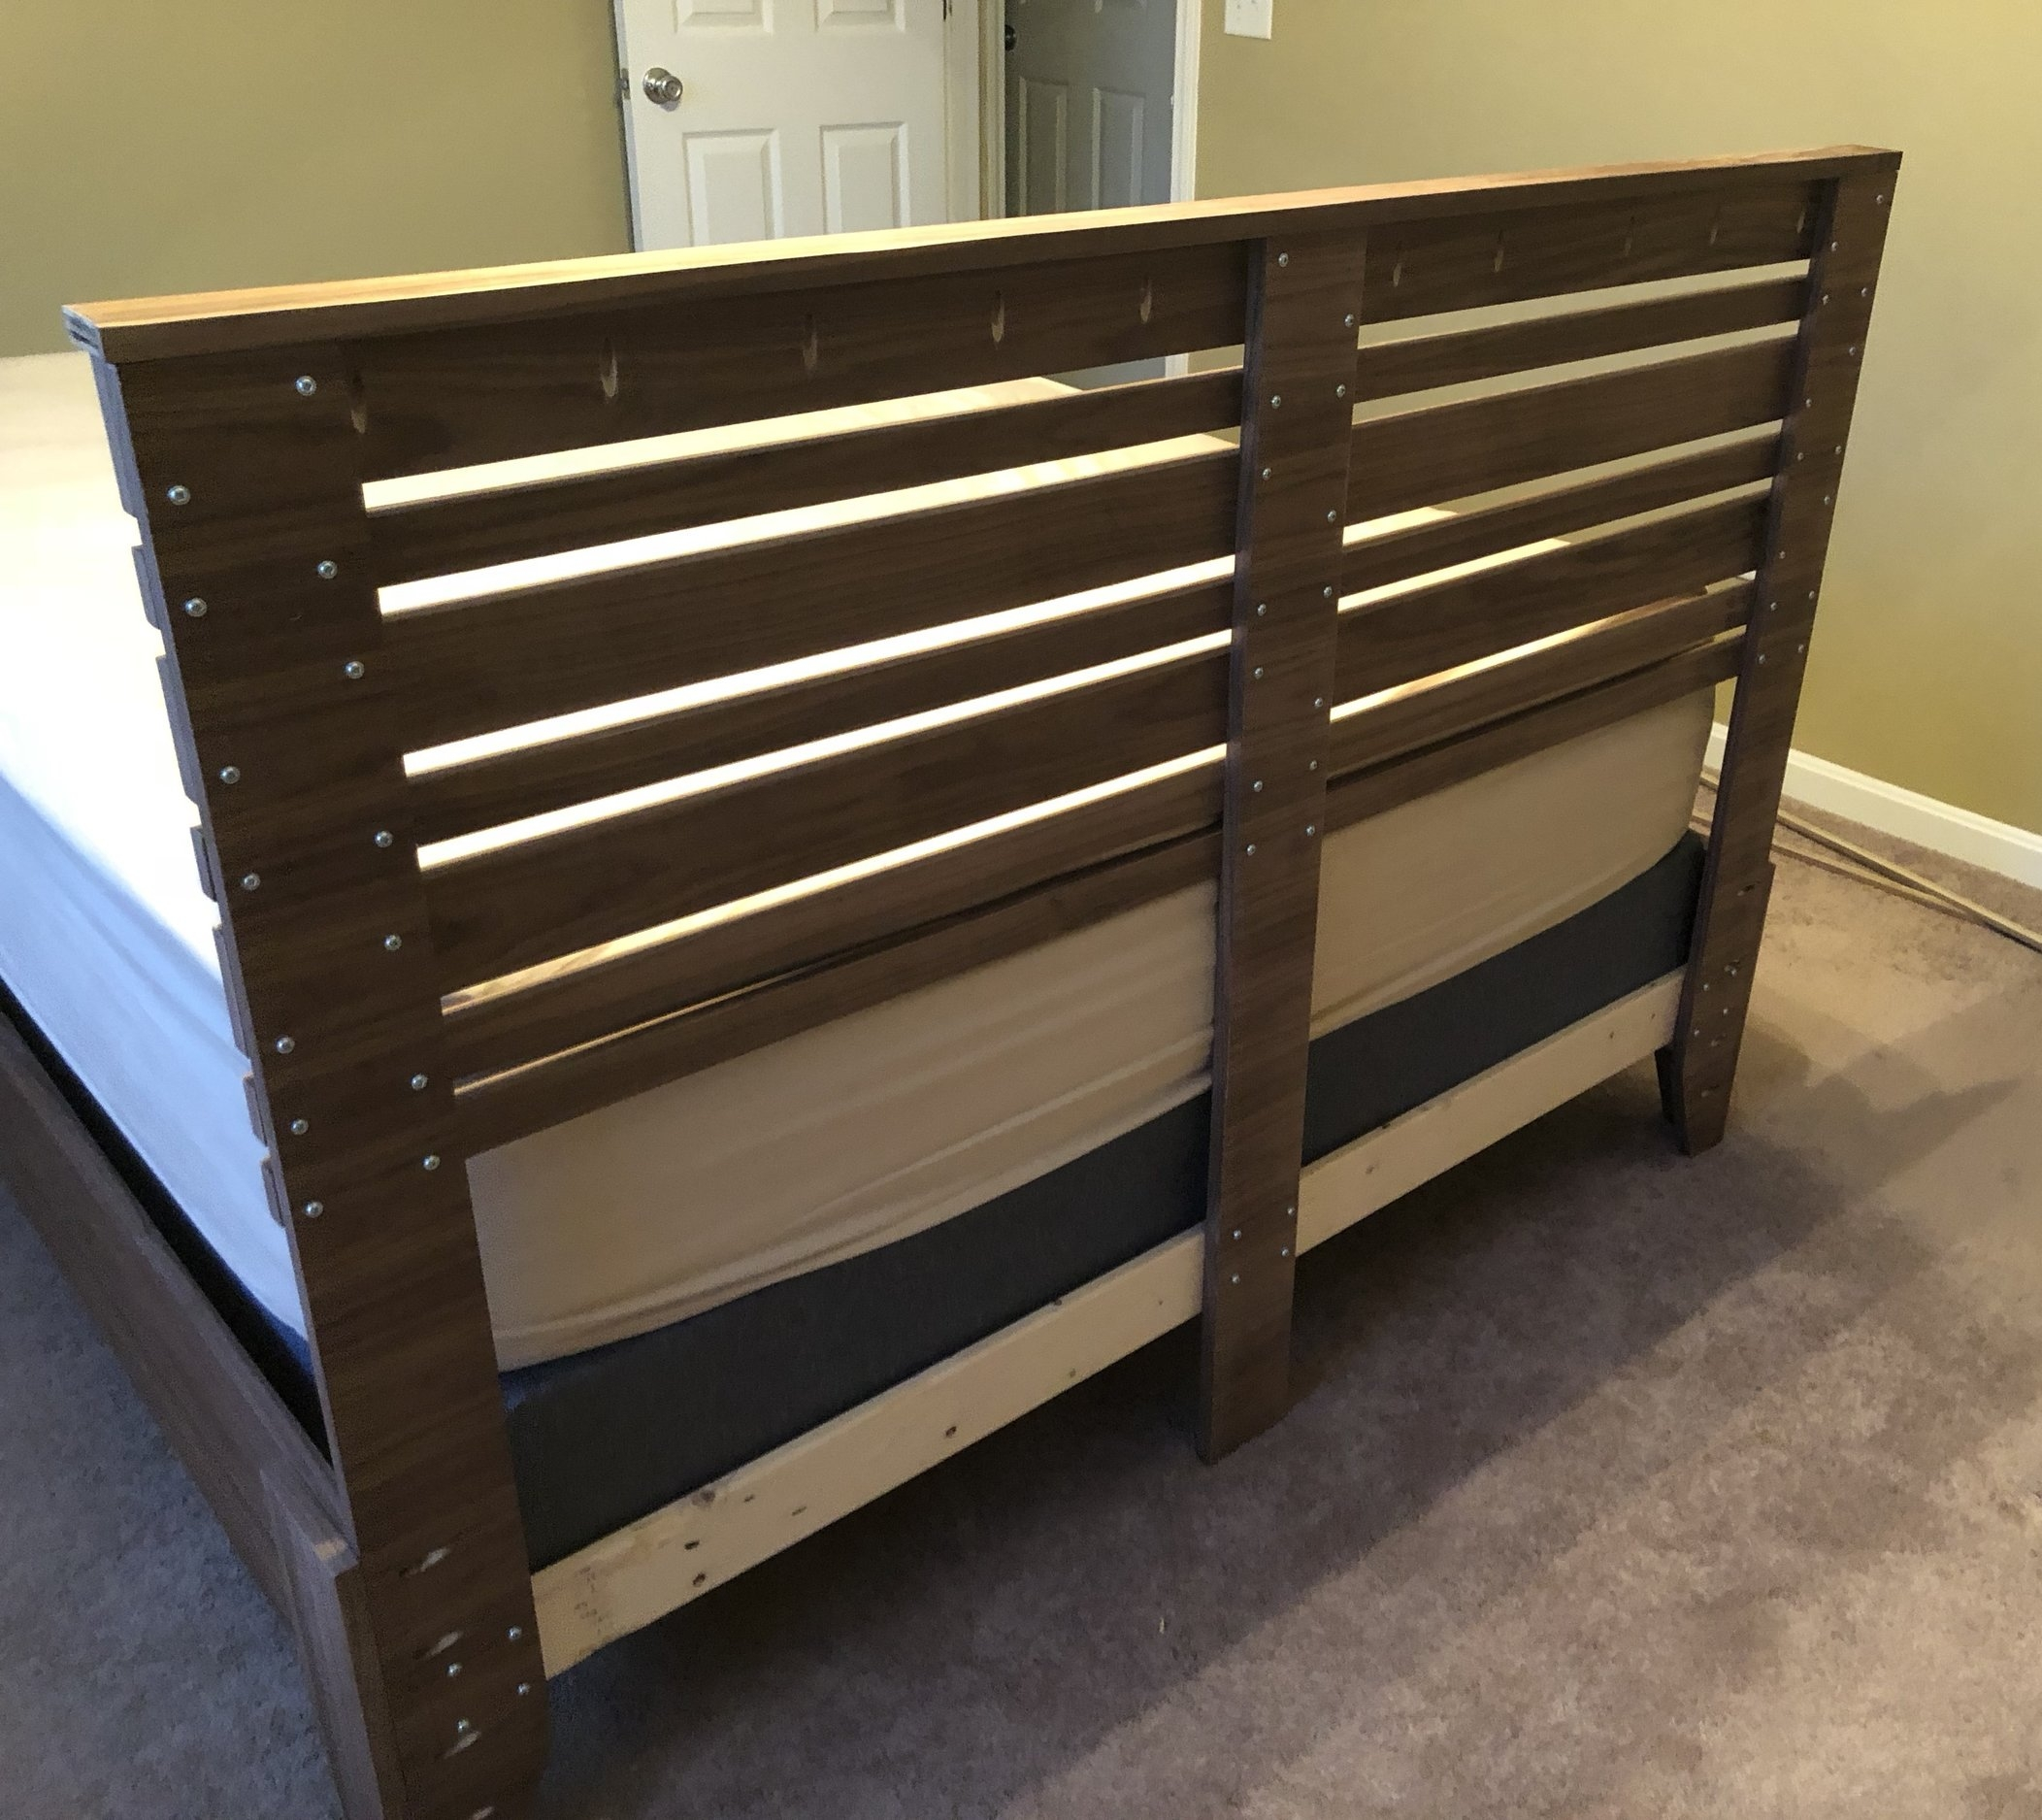 Attach the Headboard to the Bed Frame